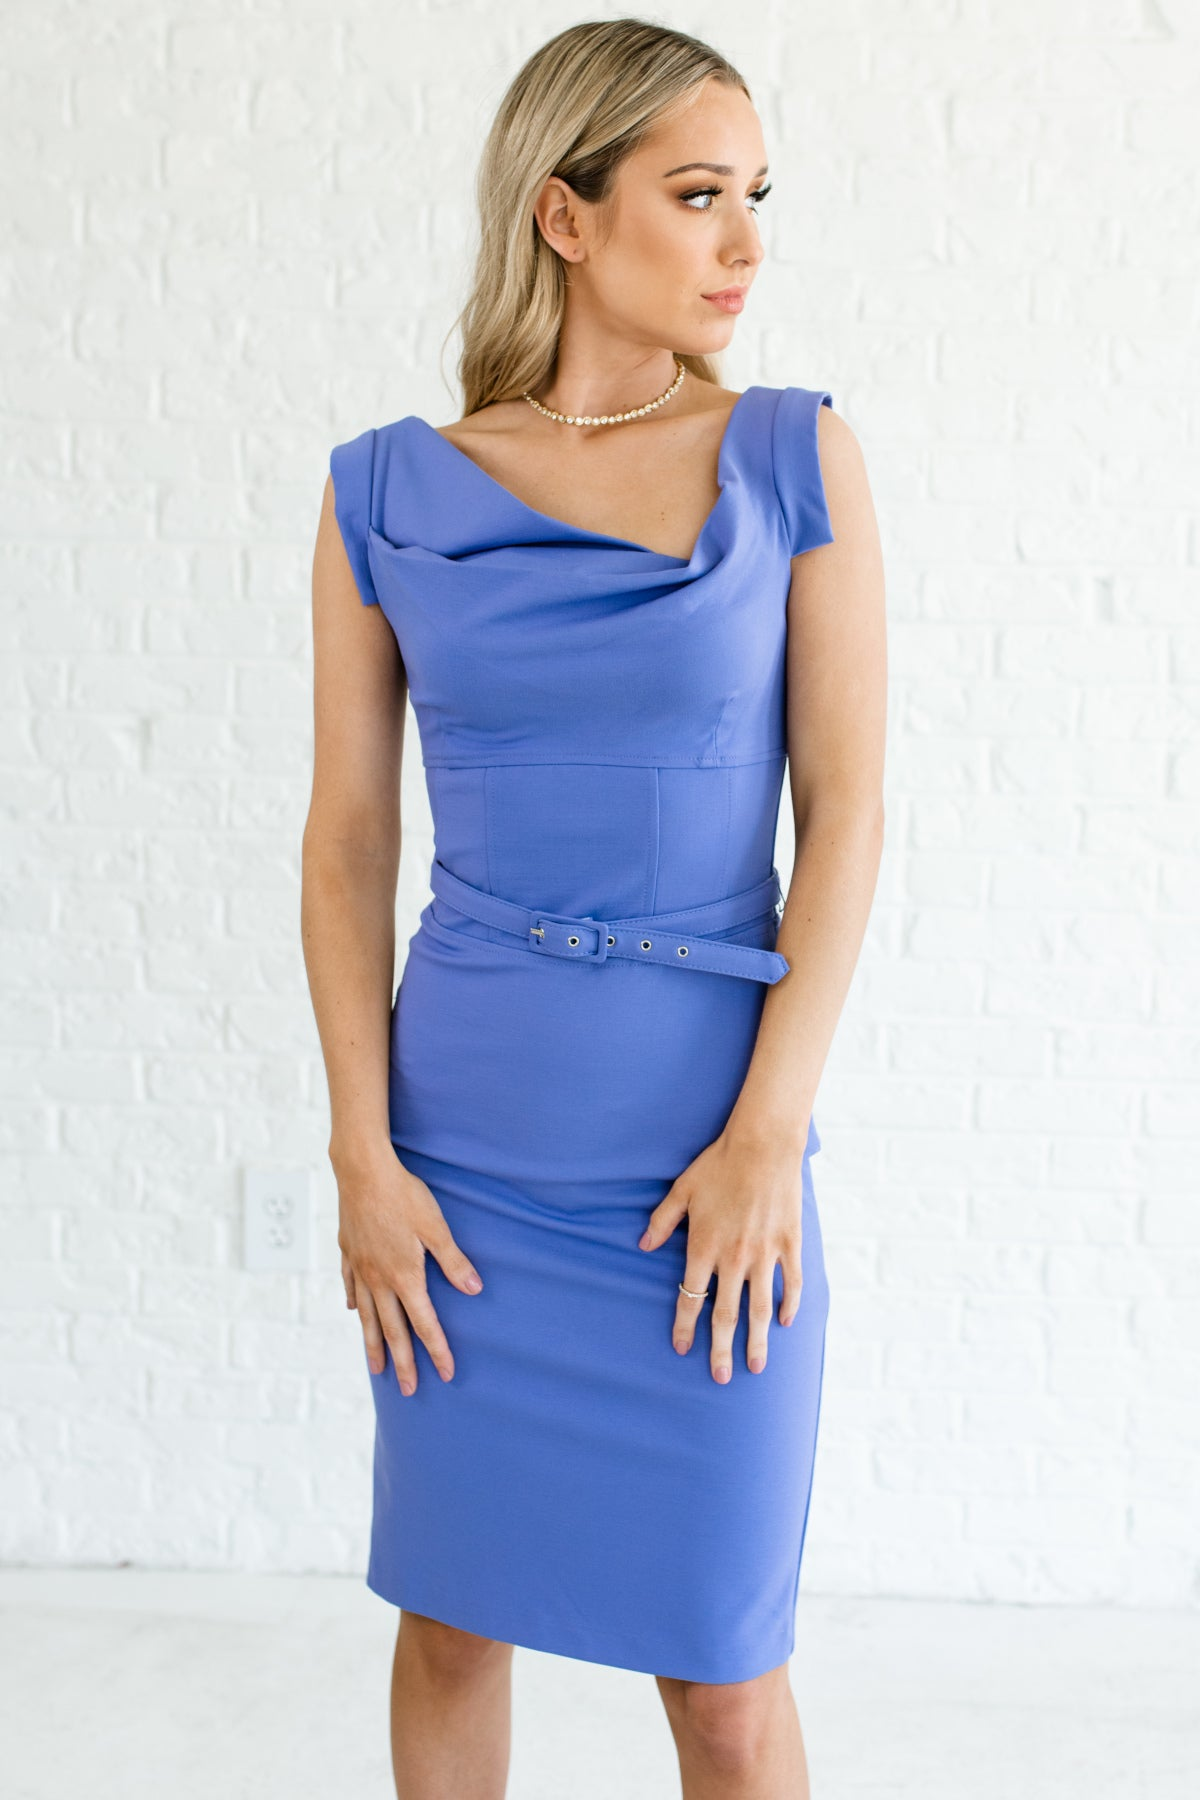 Fitted Knee Length Blue Dress